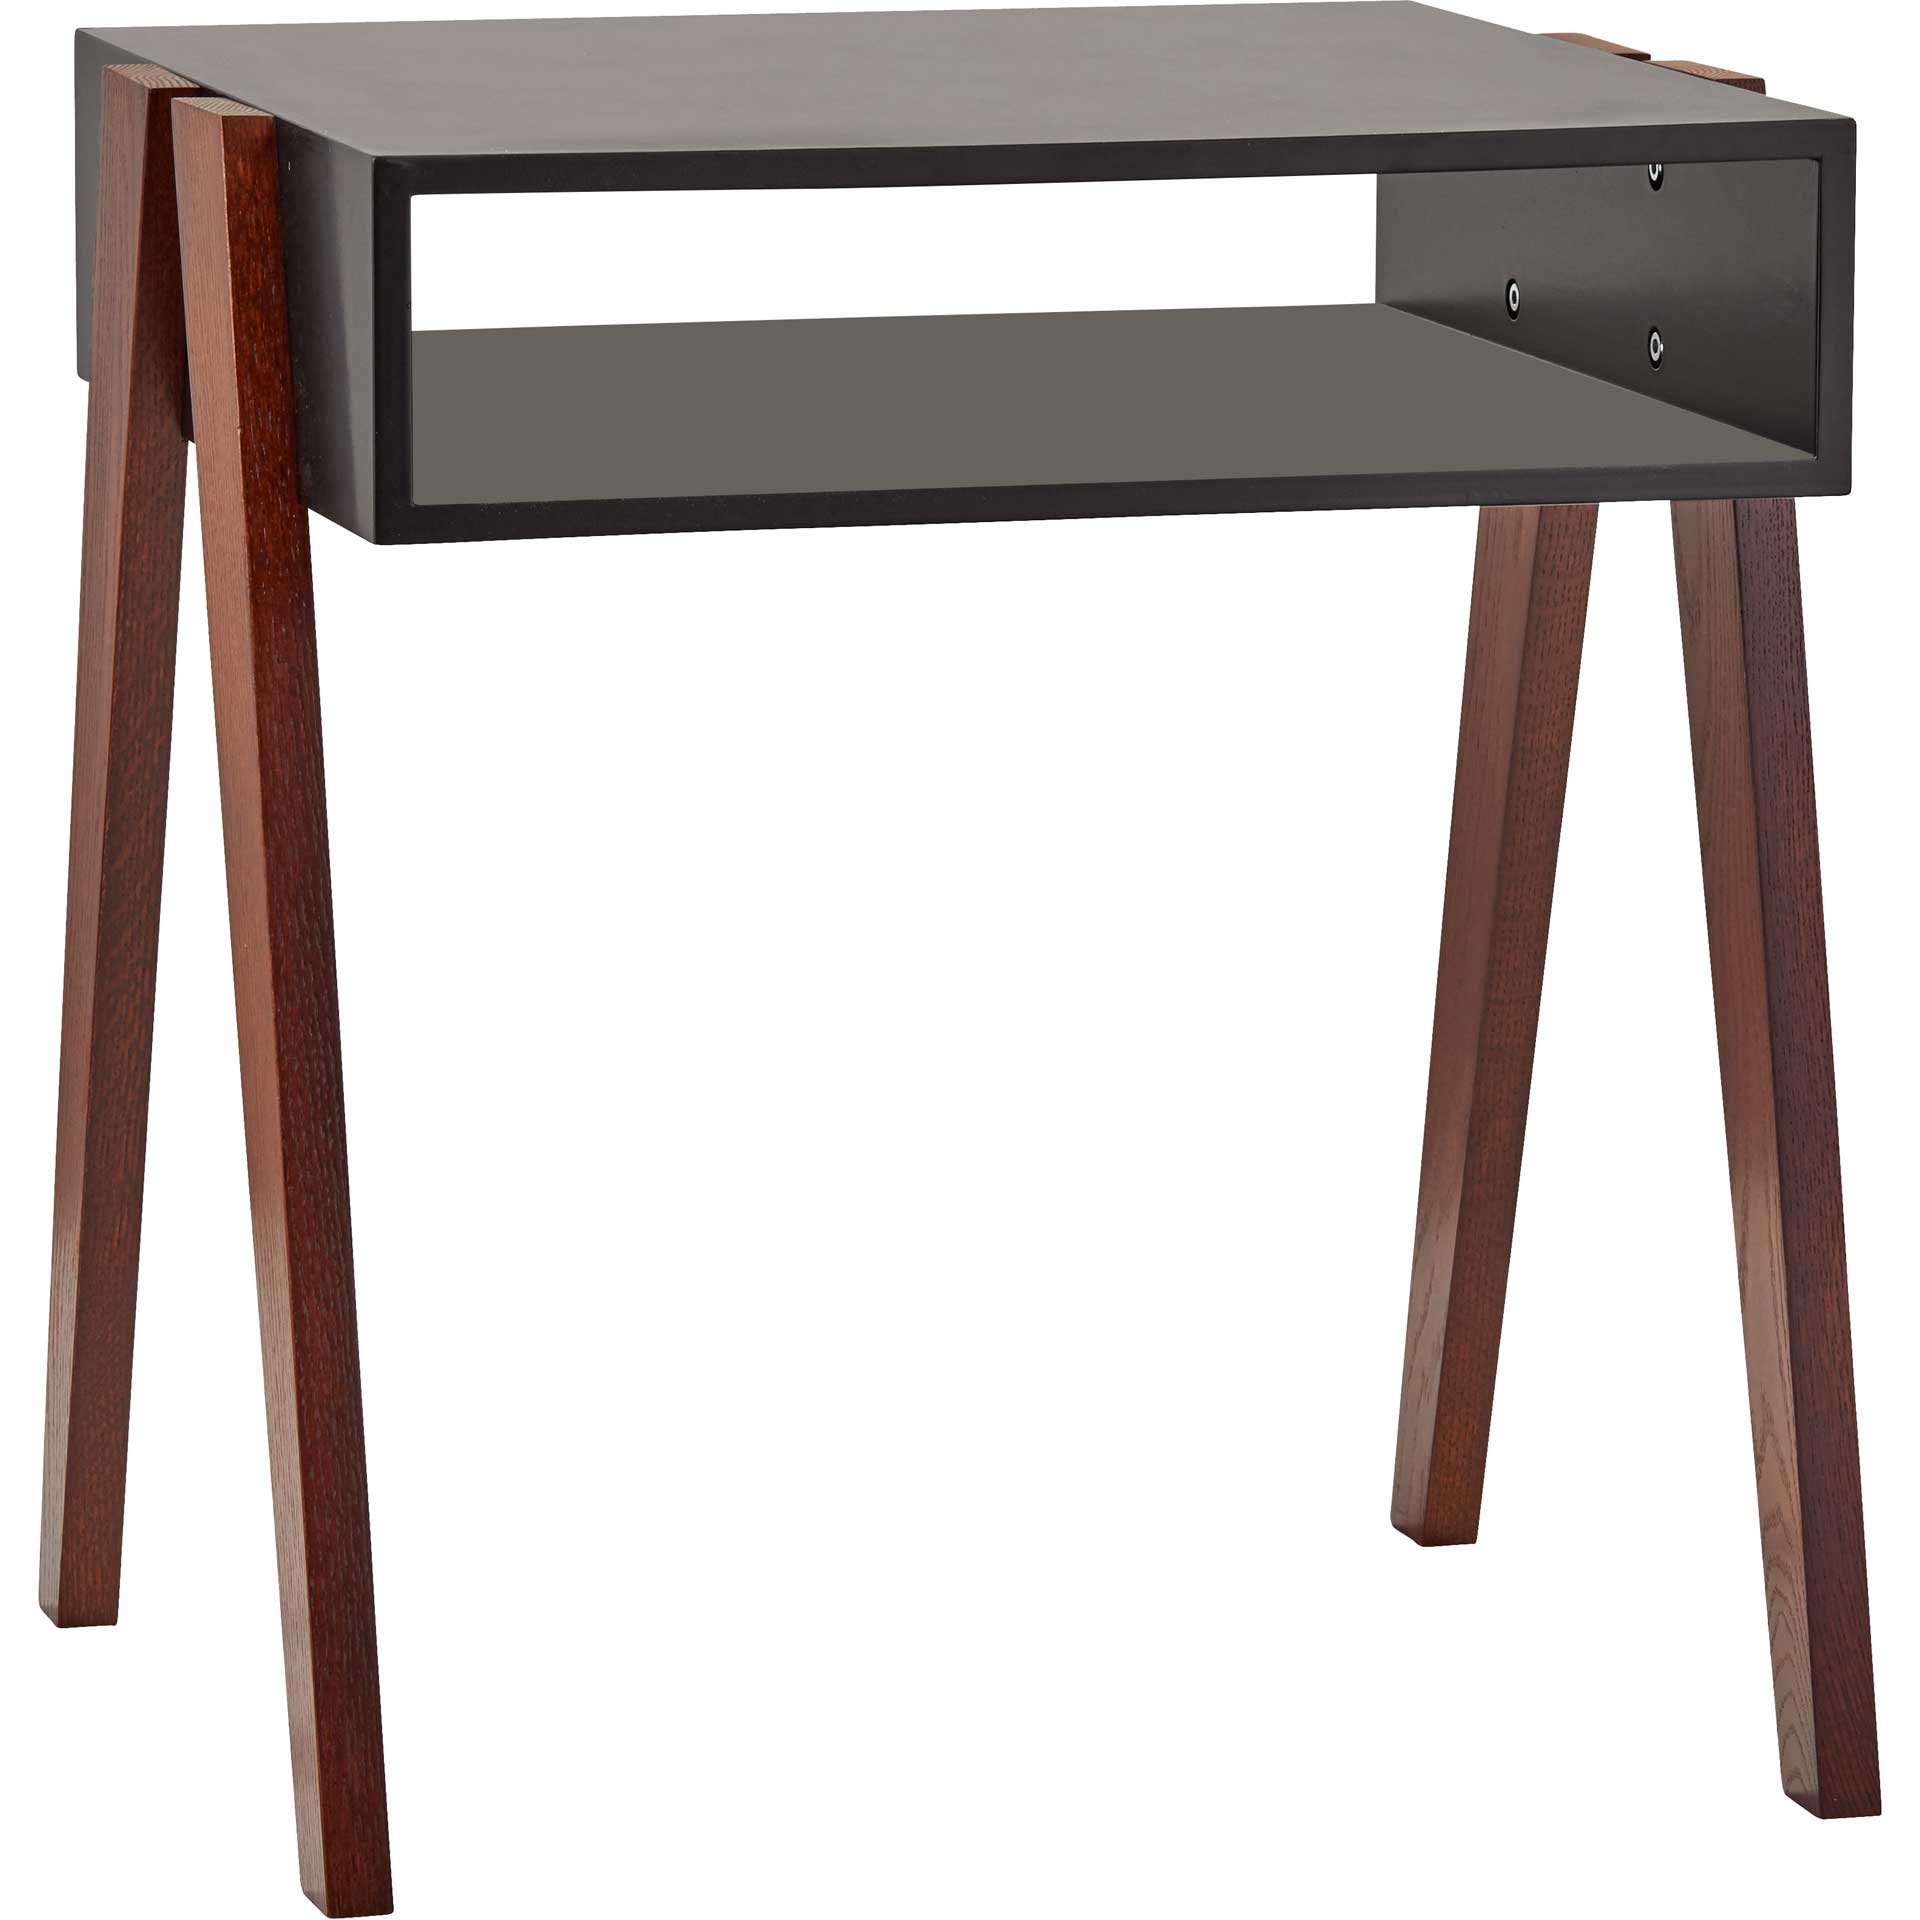 Laon End Table Black/Walnut